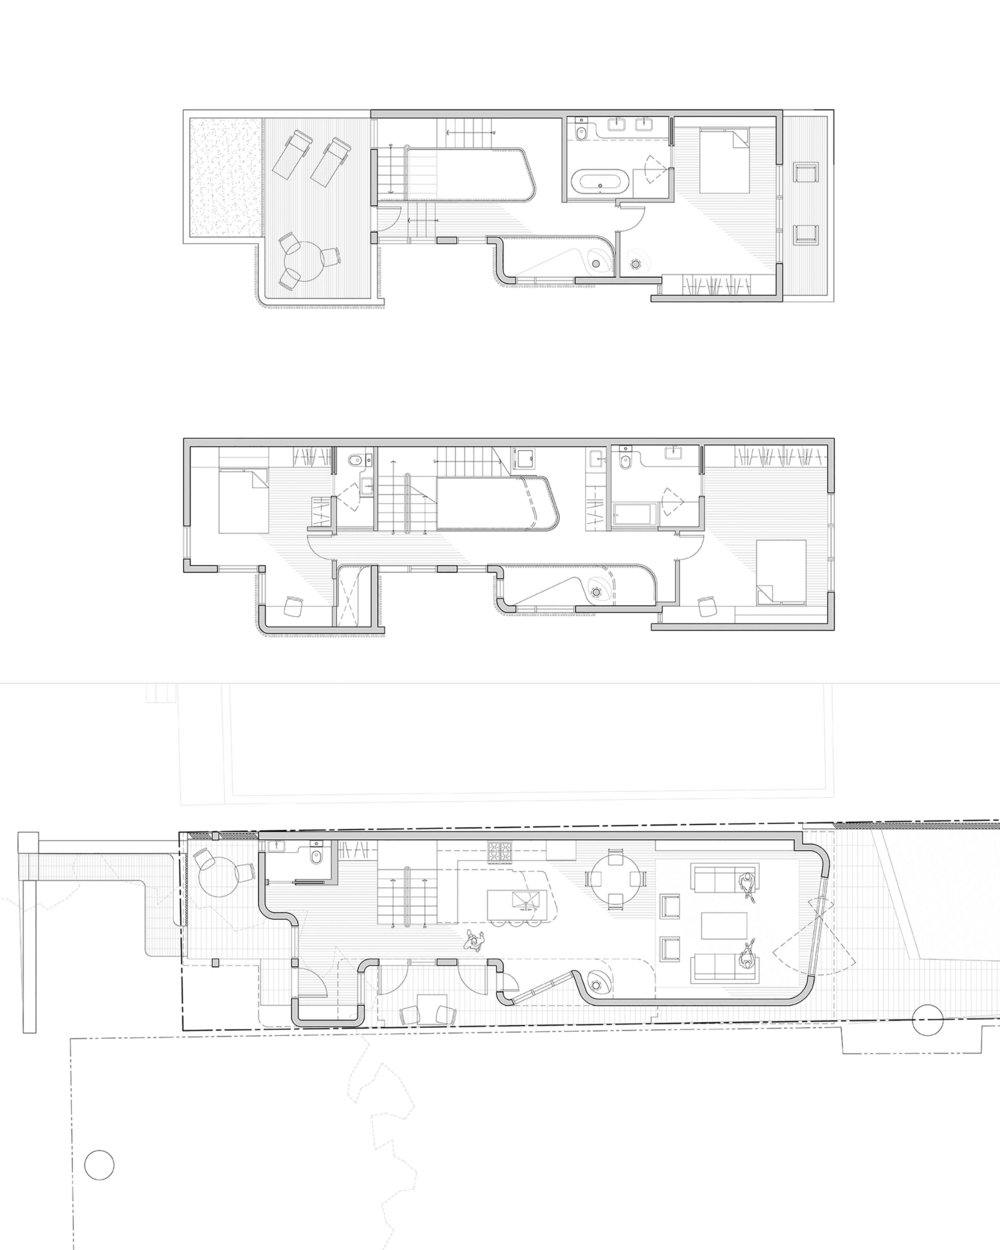 8x10_Bushell_Building Plans Cropped.jpg